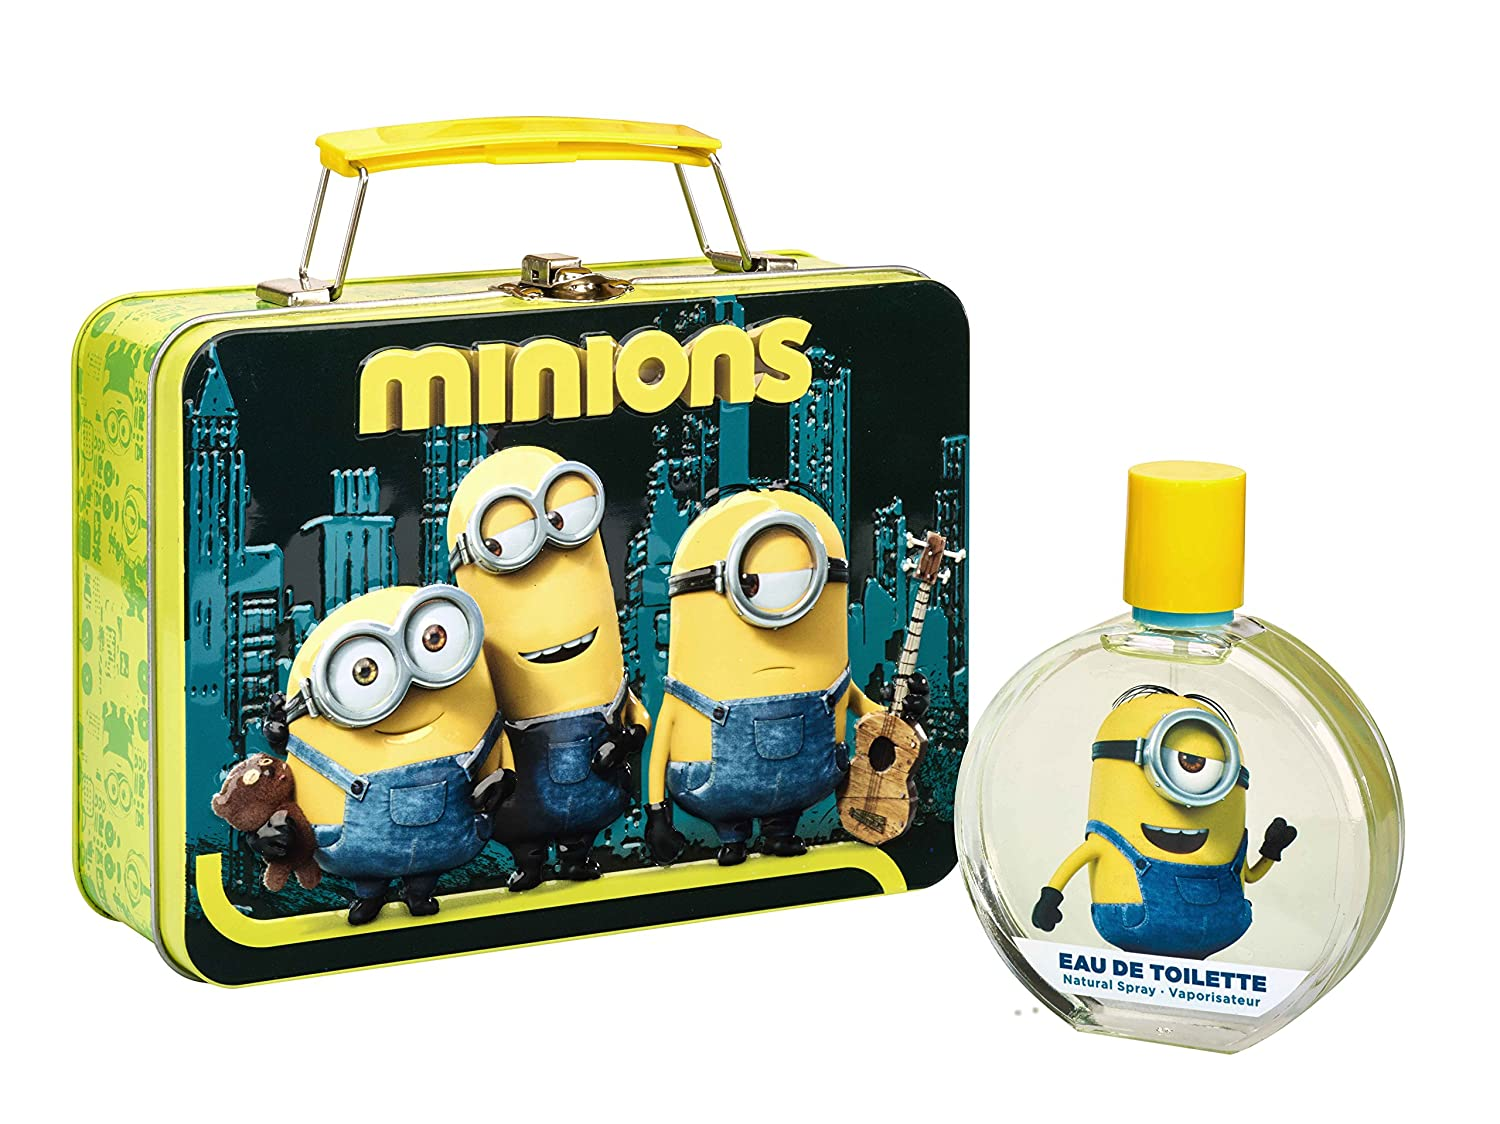 Minions Lunch Box + Colonge by Universal Studios Air-Val International S.A. 6298